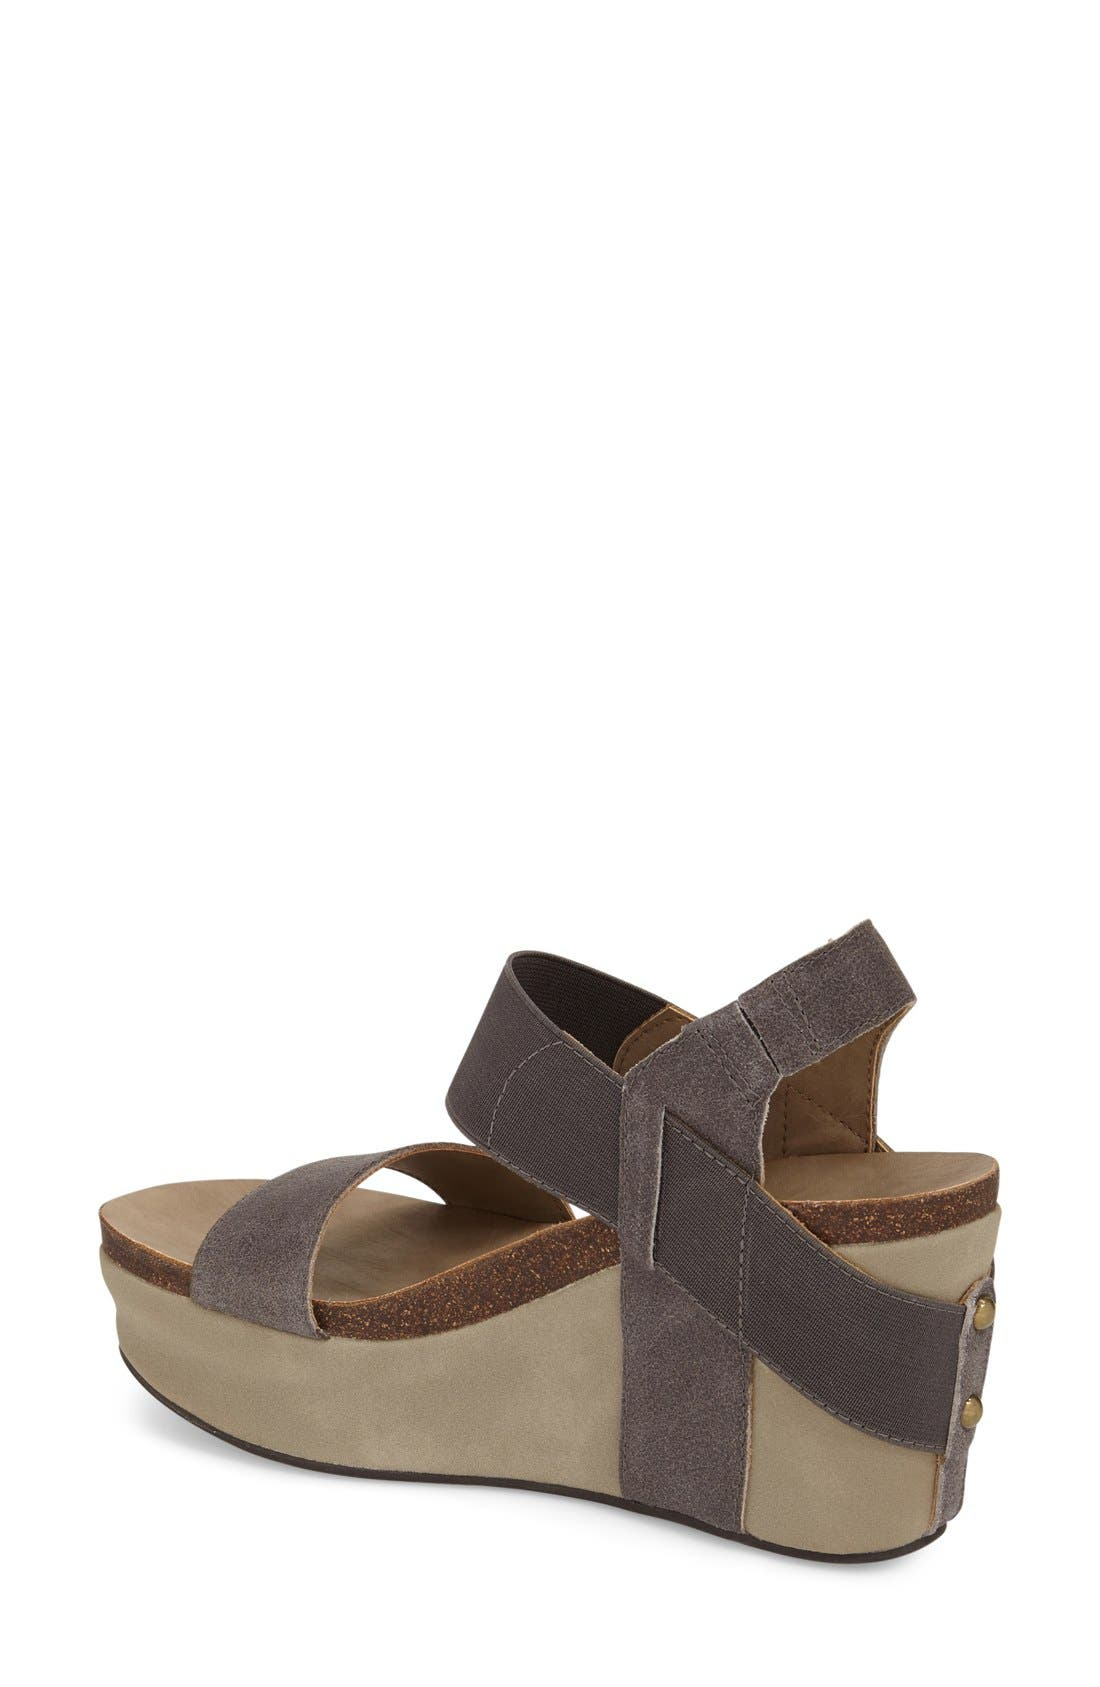 'Bushnell' Wedge Sandal,                             Alternate thumbnail 19, color,